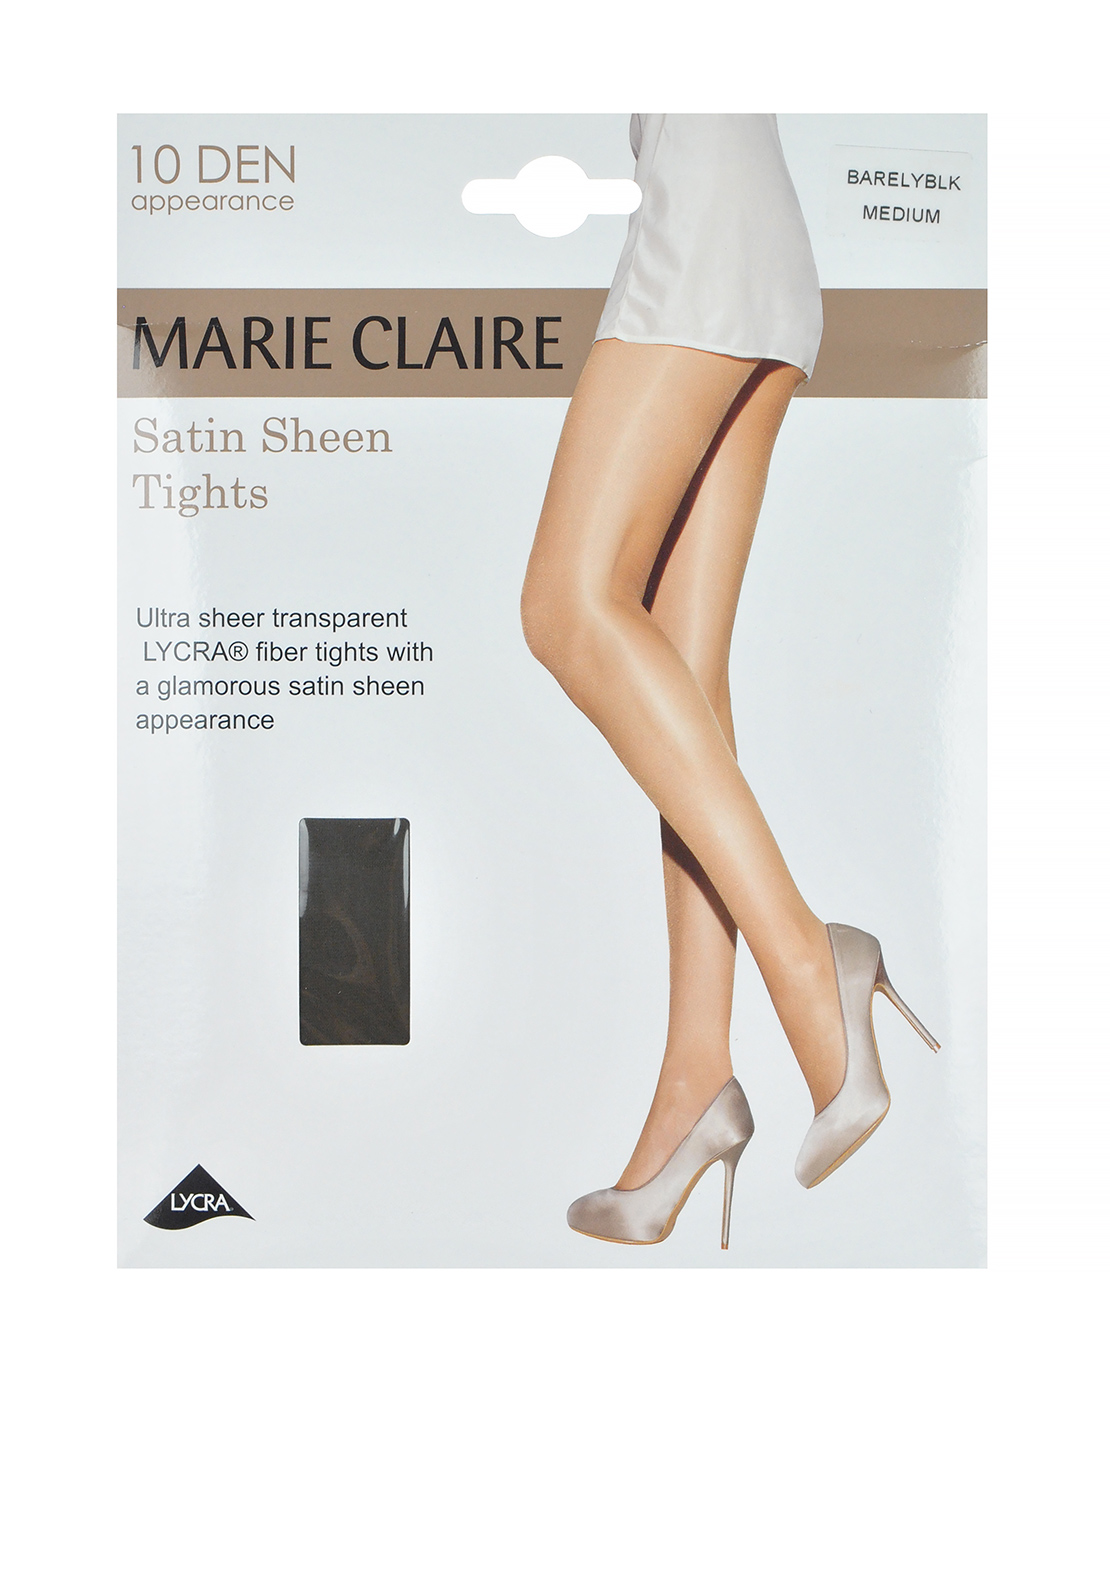 Marie Claire 10 Denier Satin Sheen Tights, Barely Black